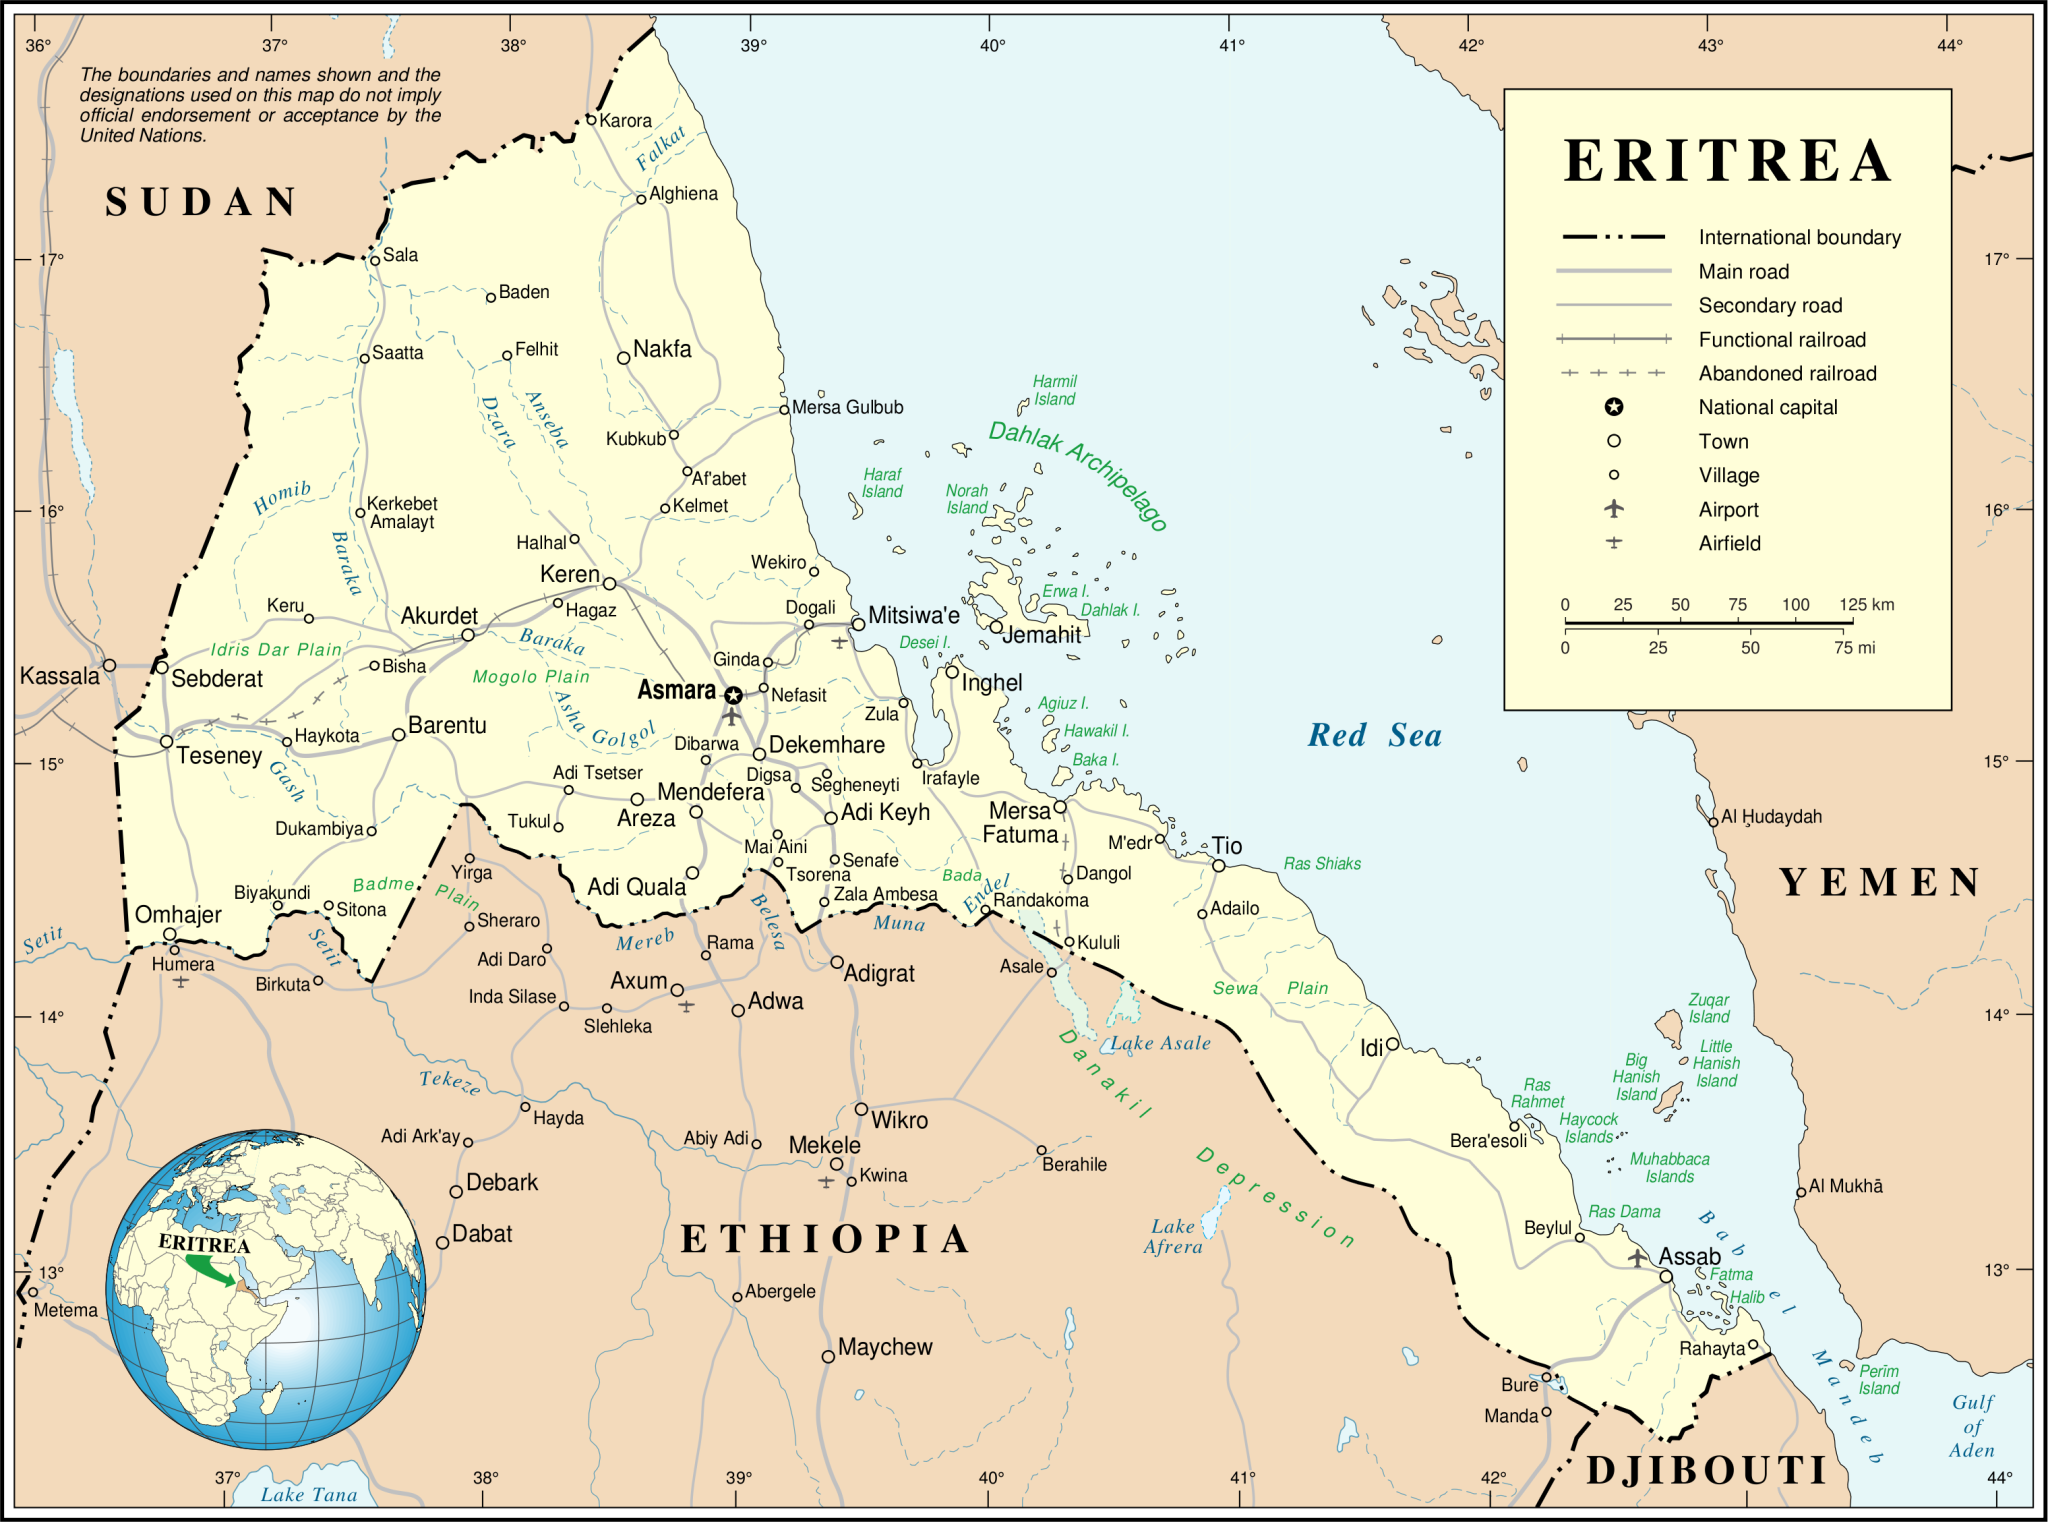 Home Office publishes new Eritrea country information and fact finding report